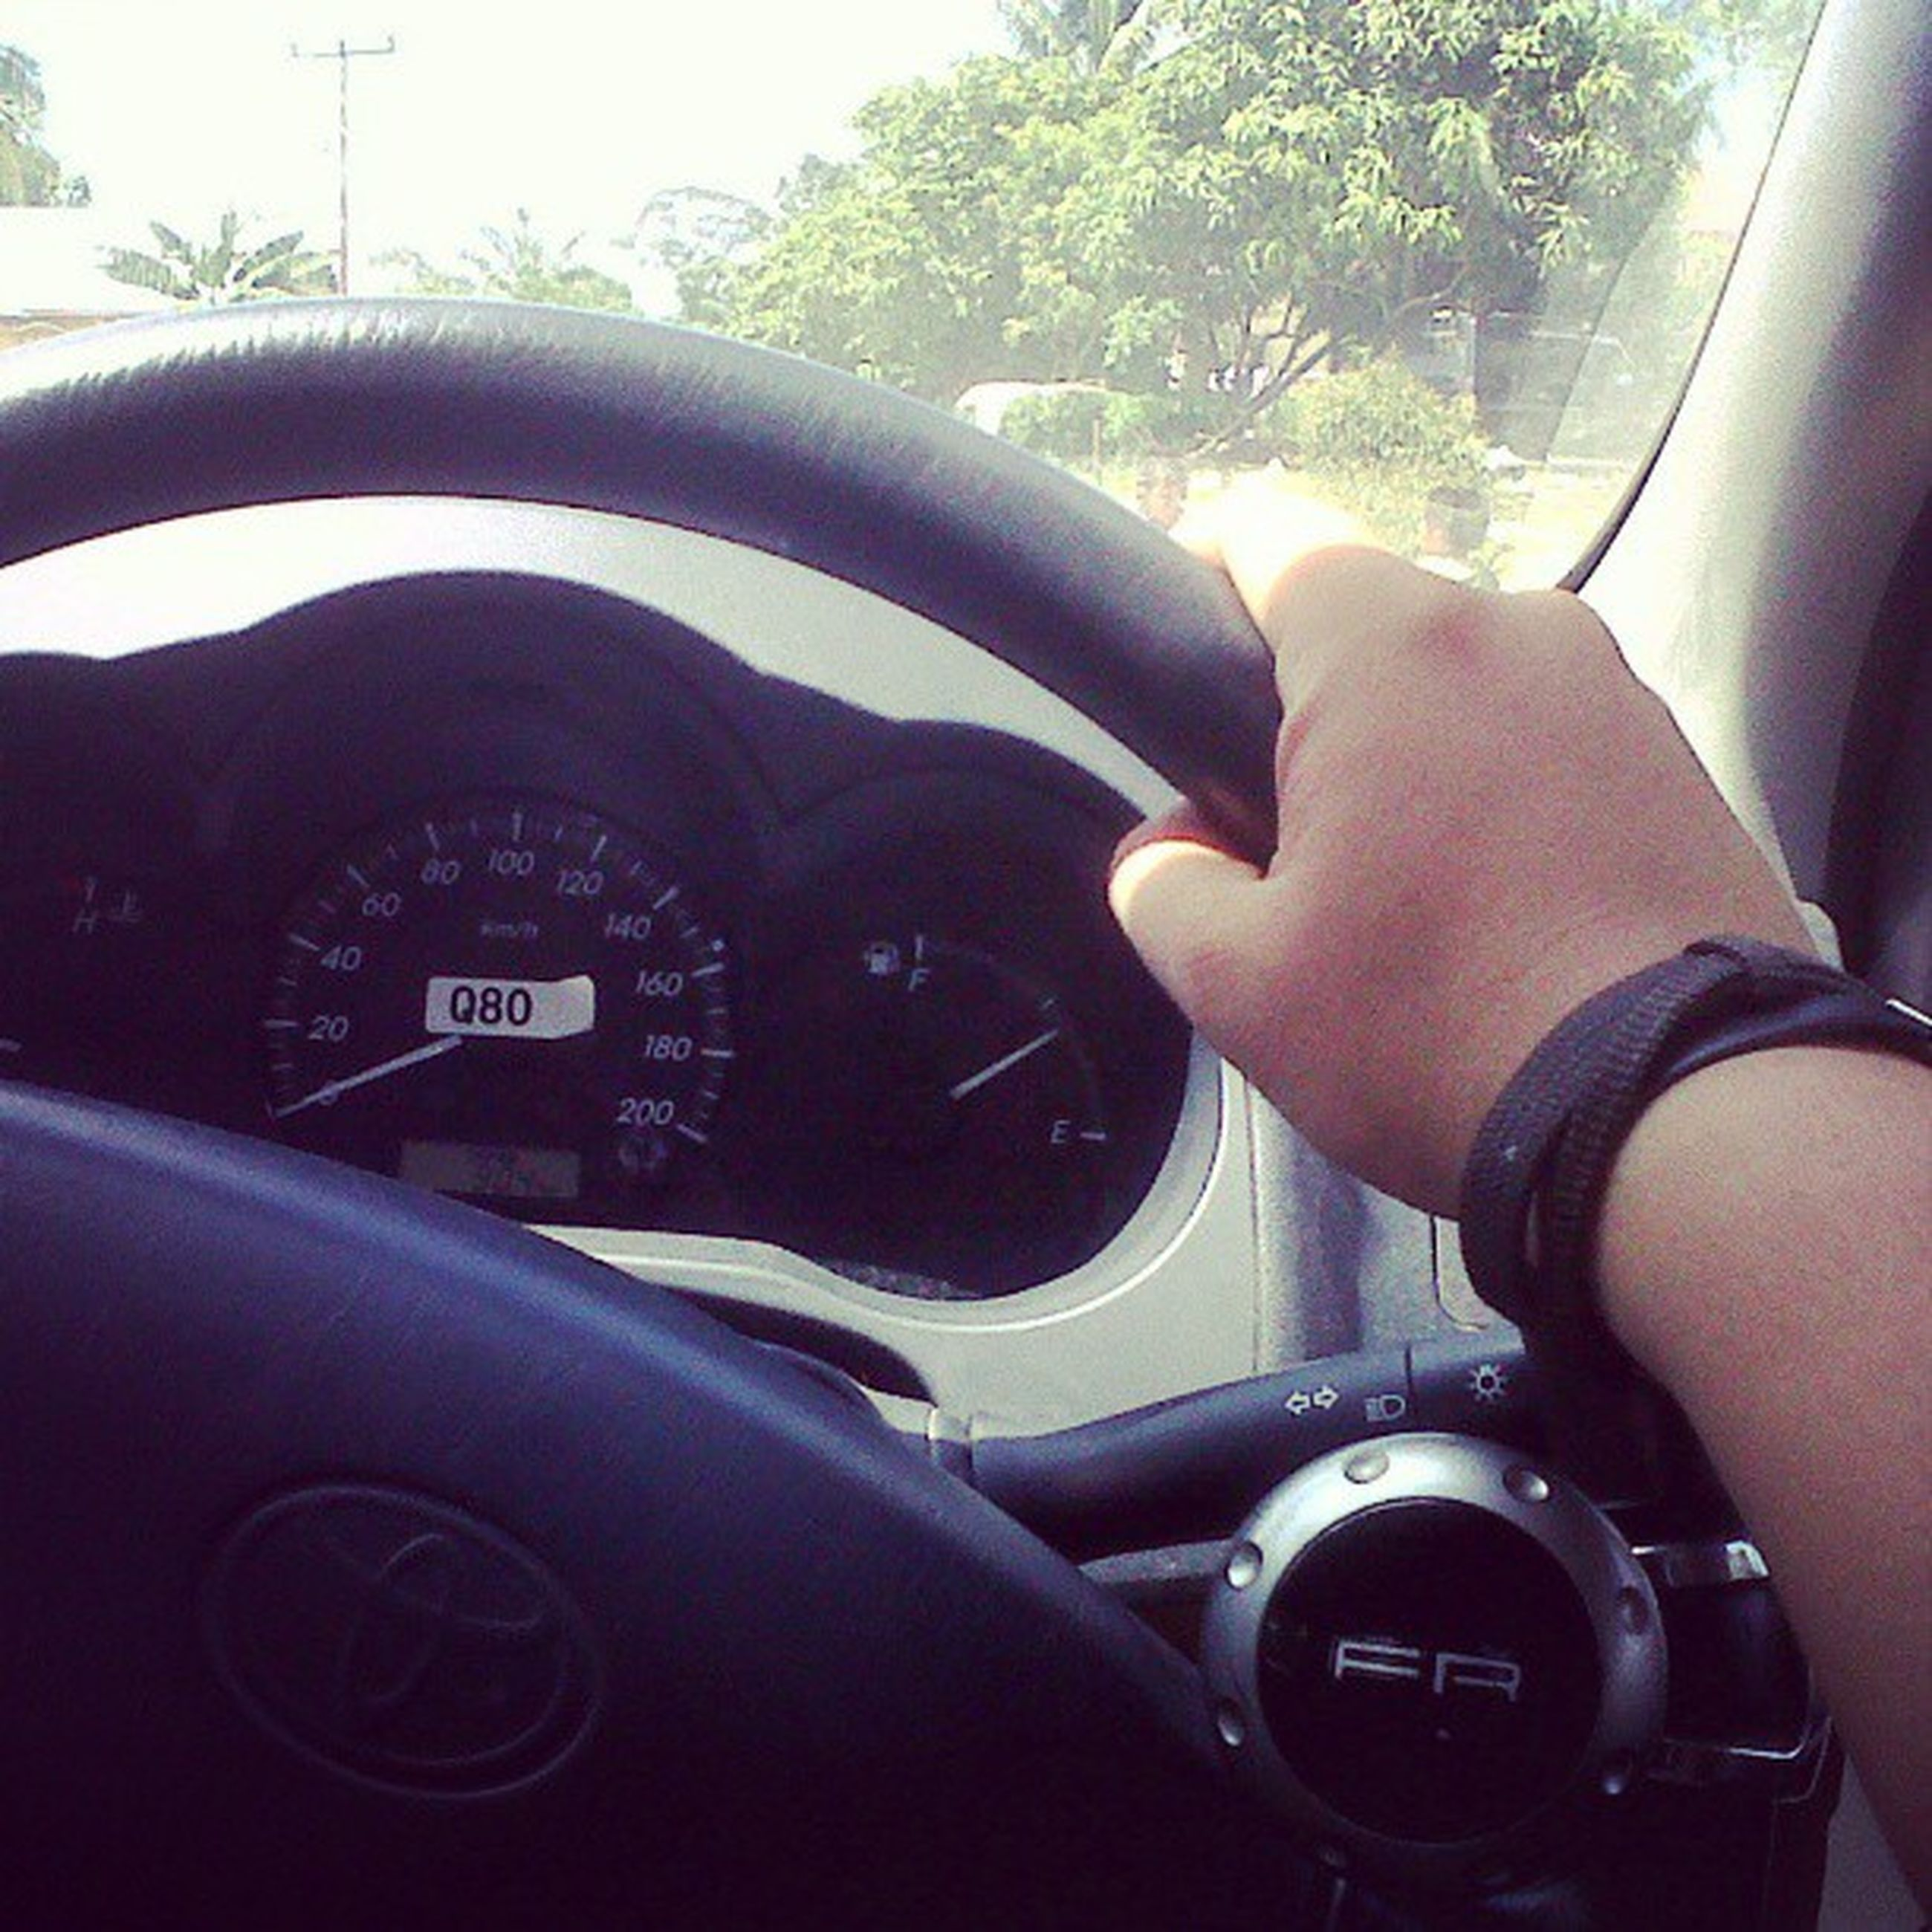 transportation, mode of transport, land vehicle, car, vehicle interior, travel, car interior, lifestyles, part of, leisure activity, driving, windshield, personal perspective, men, cropped, steering wheel, on the move